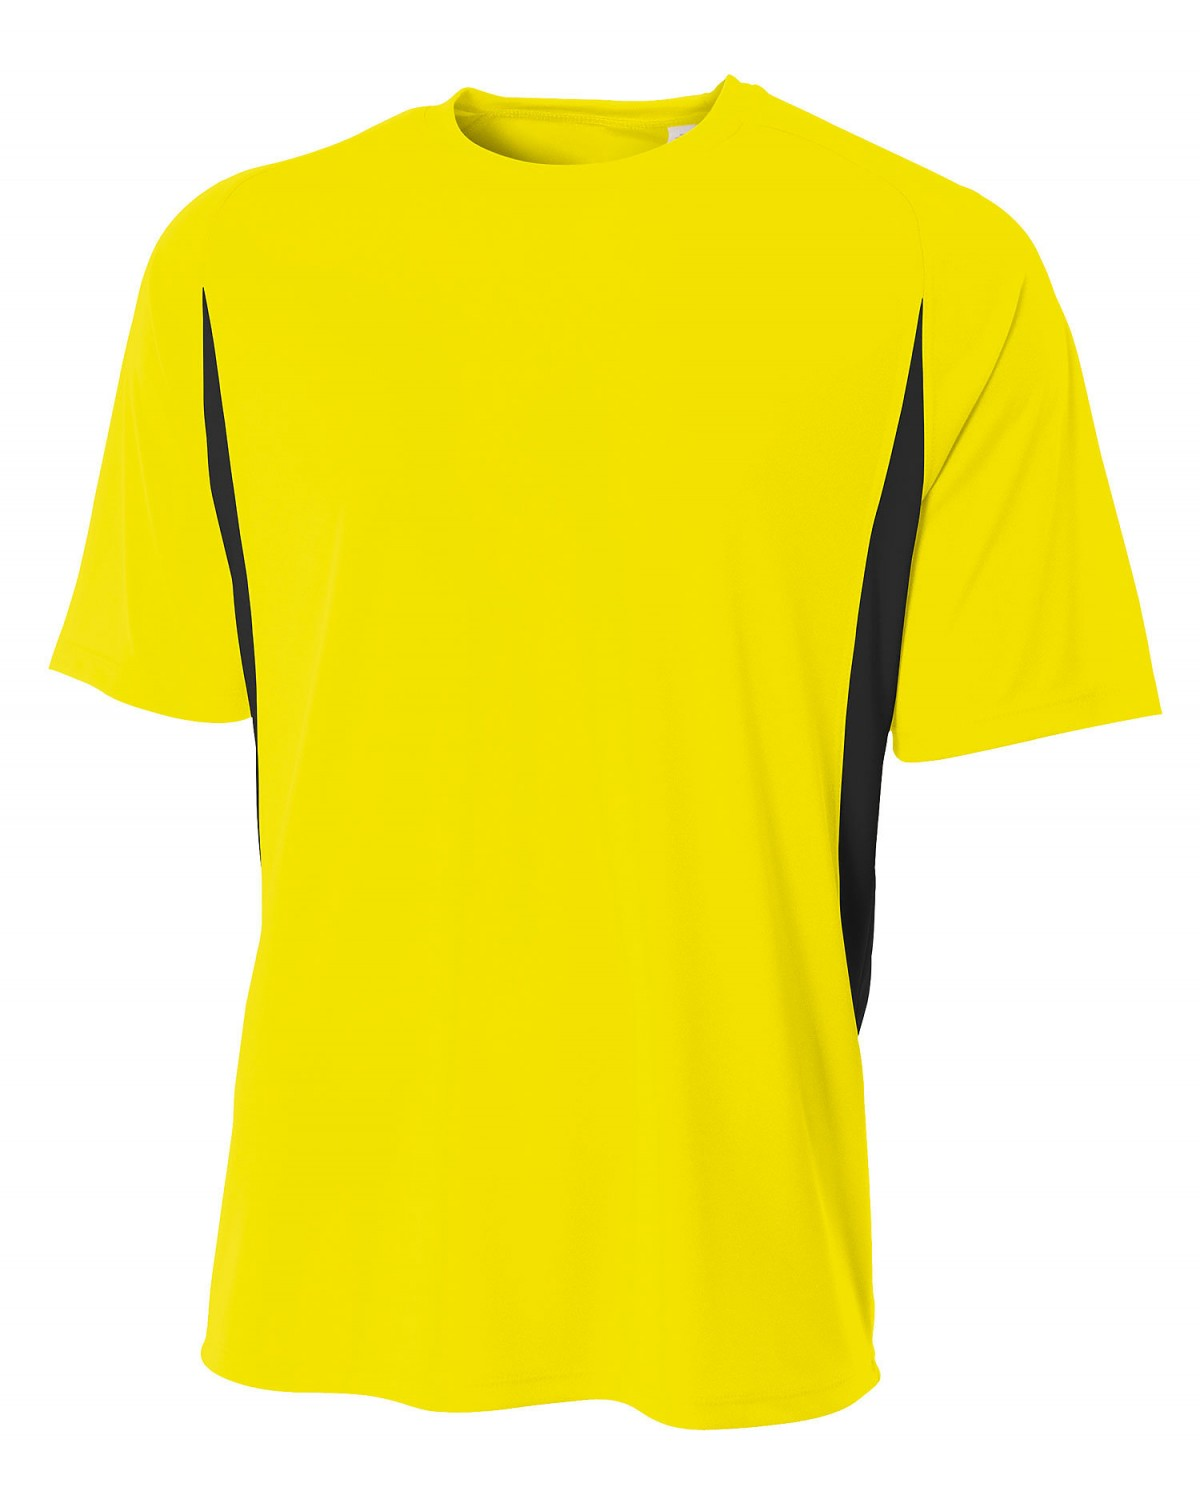 A4N3181 A4 Safety Yellow/Black